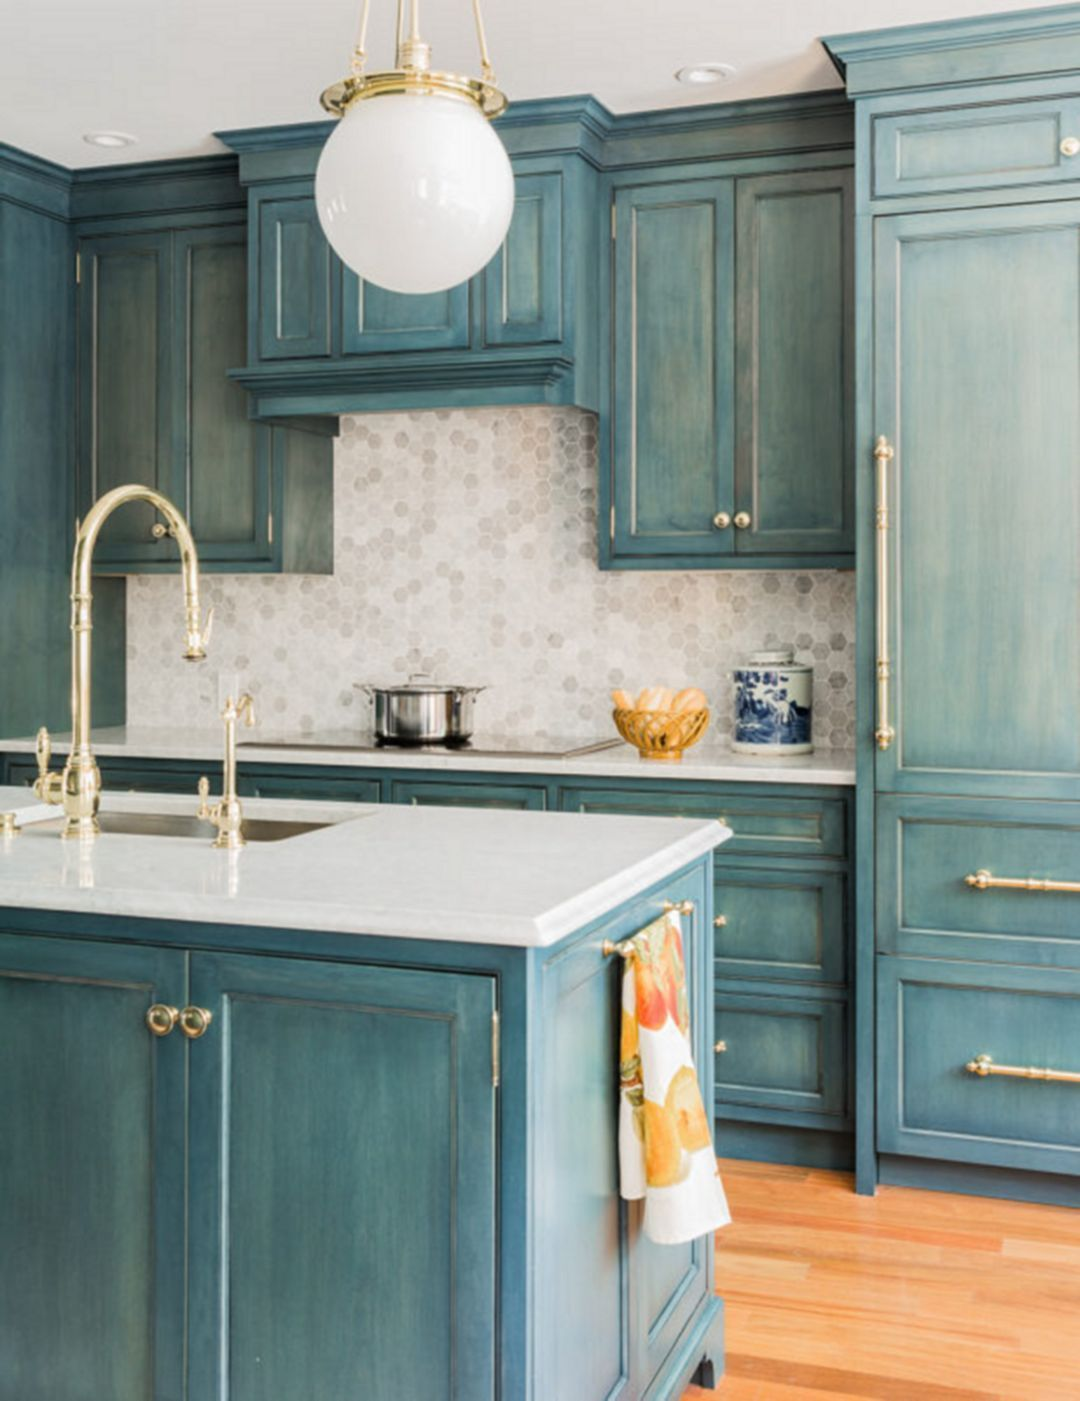 Wooden Kitchen Cupboards61 Distressed Kitchen Cabinets Beautiful Kitchen Cabinets Turquoise Kitchen Cabinets